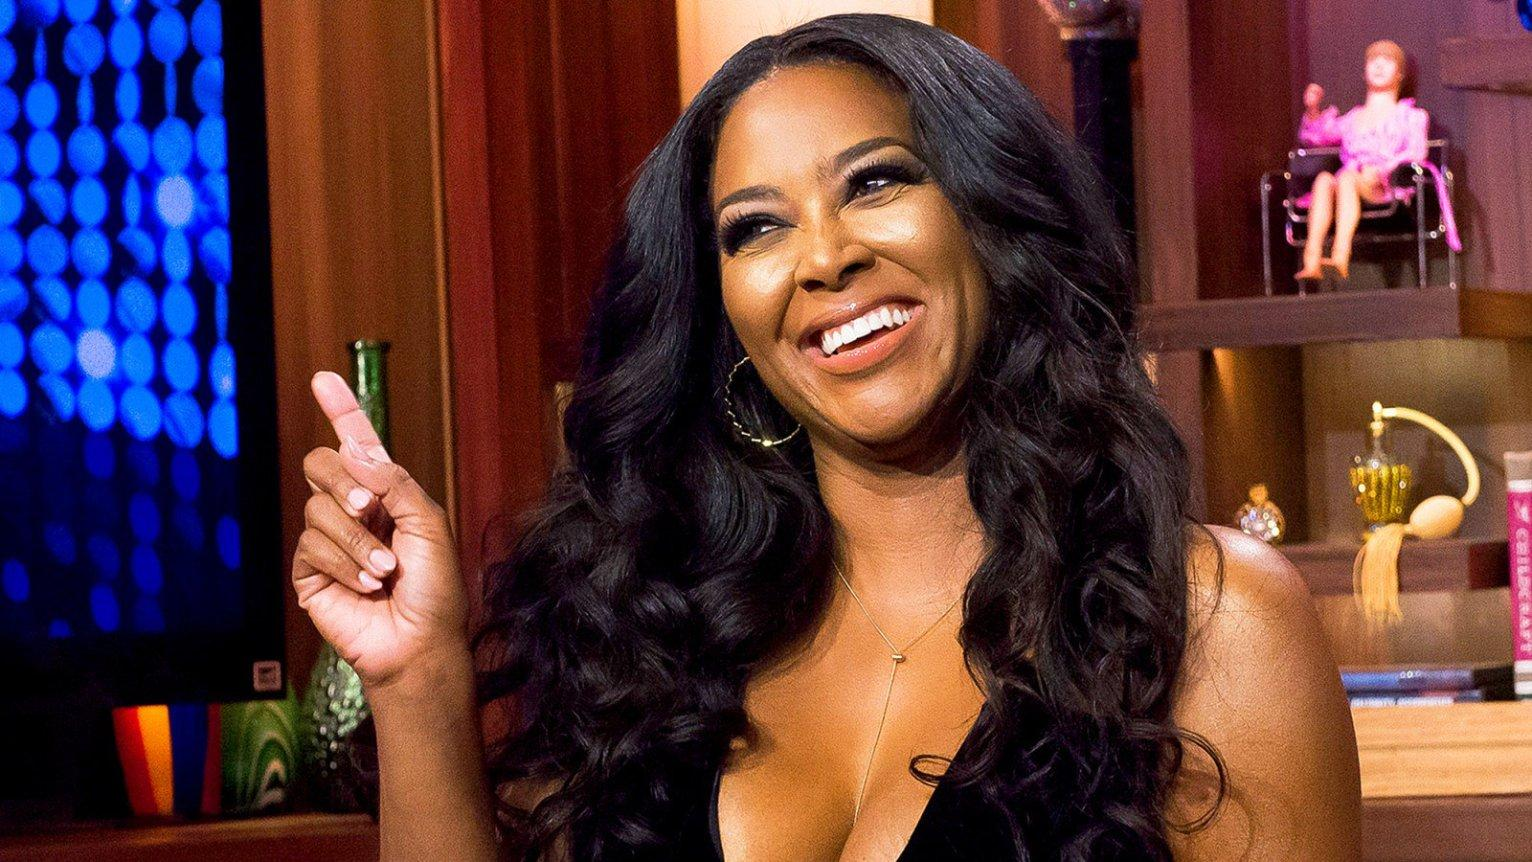 Kenya Moore Gushes Over Her 'Amazonian Bombshell Sister' – See The Gorgeous Photo